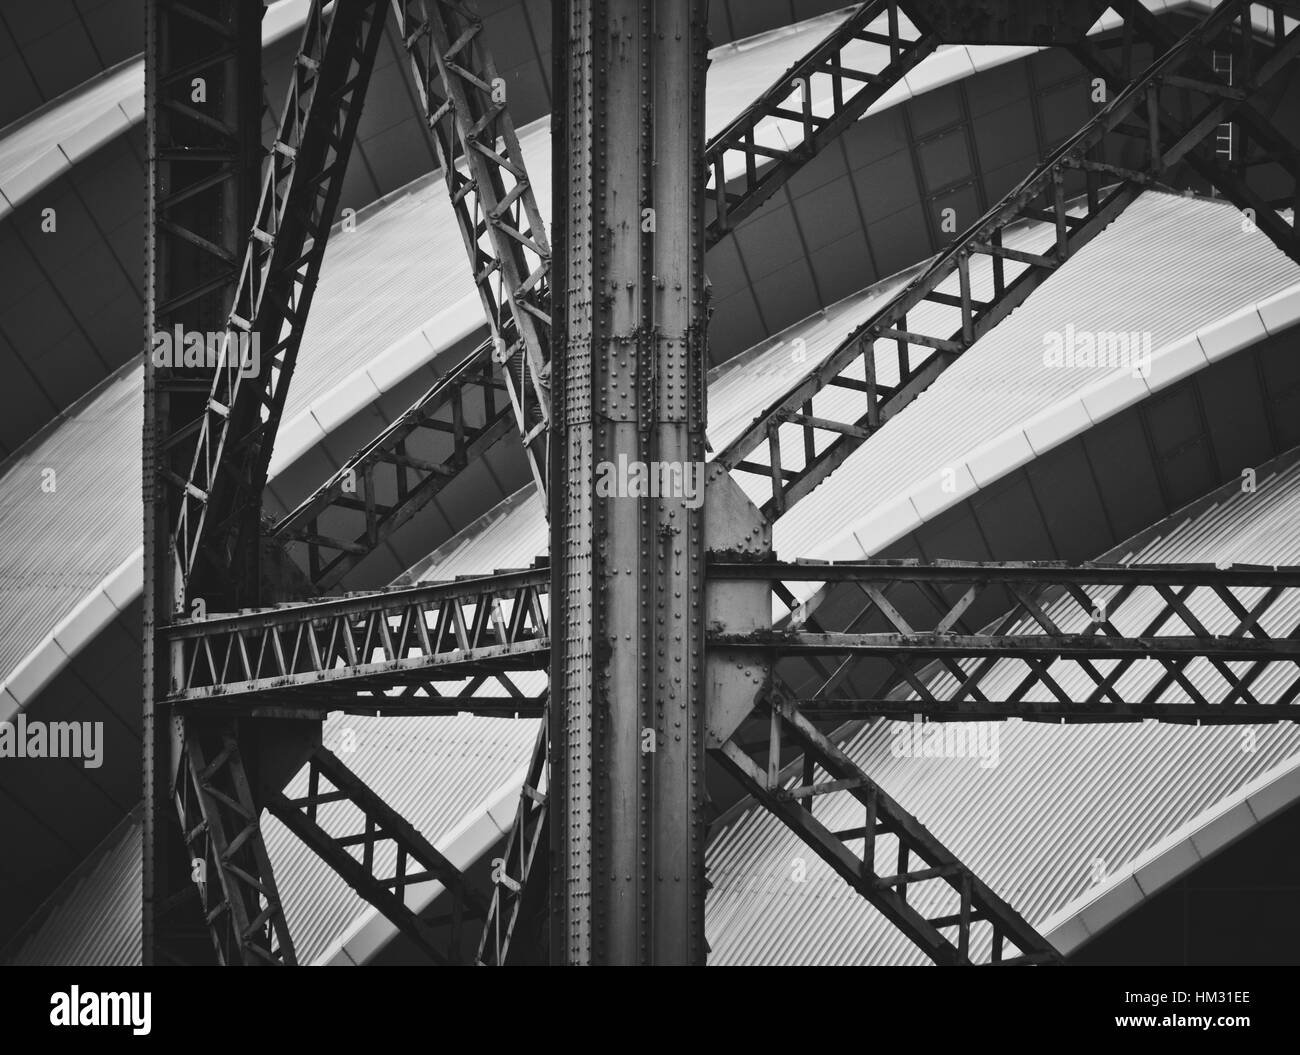 An Old Industrial Crane Against Modern Contemporary Architecture - Stock Image